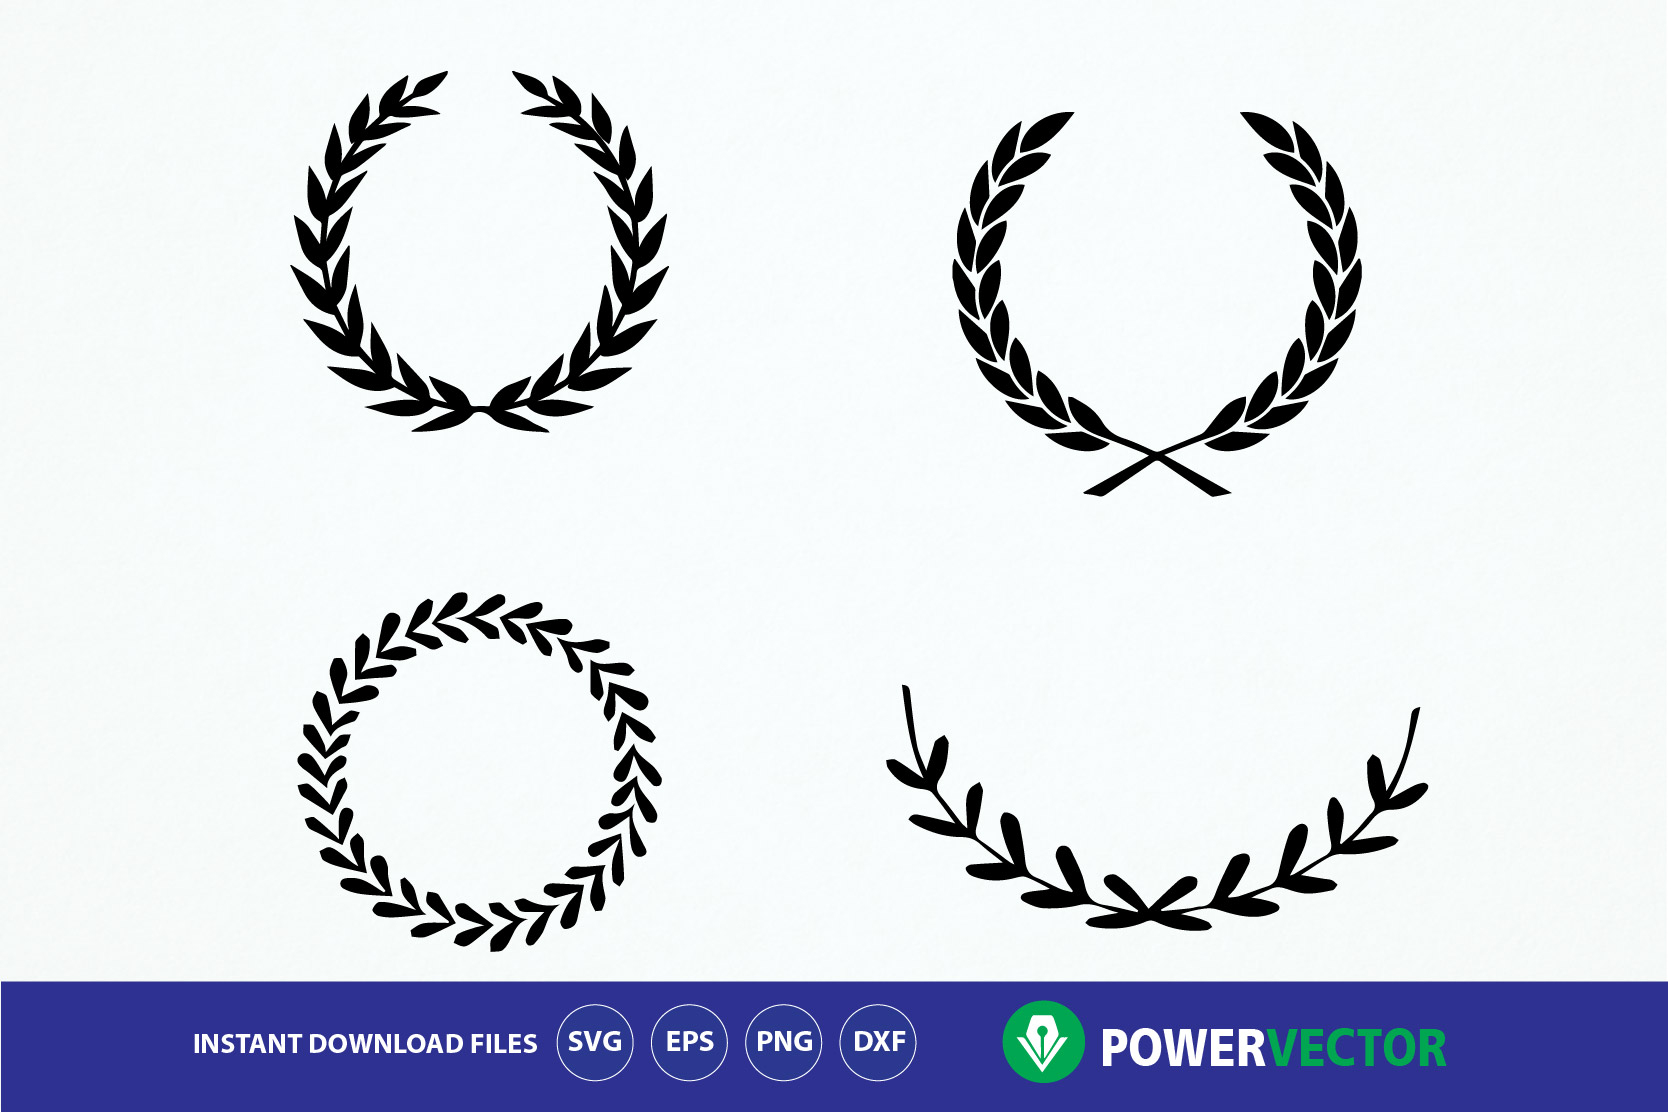 Download Free Laurel Wreaths Graphic By Powervector Creative Fabrica for Cricut Explore, Silhouette and other cutting machines.